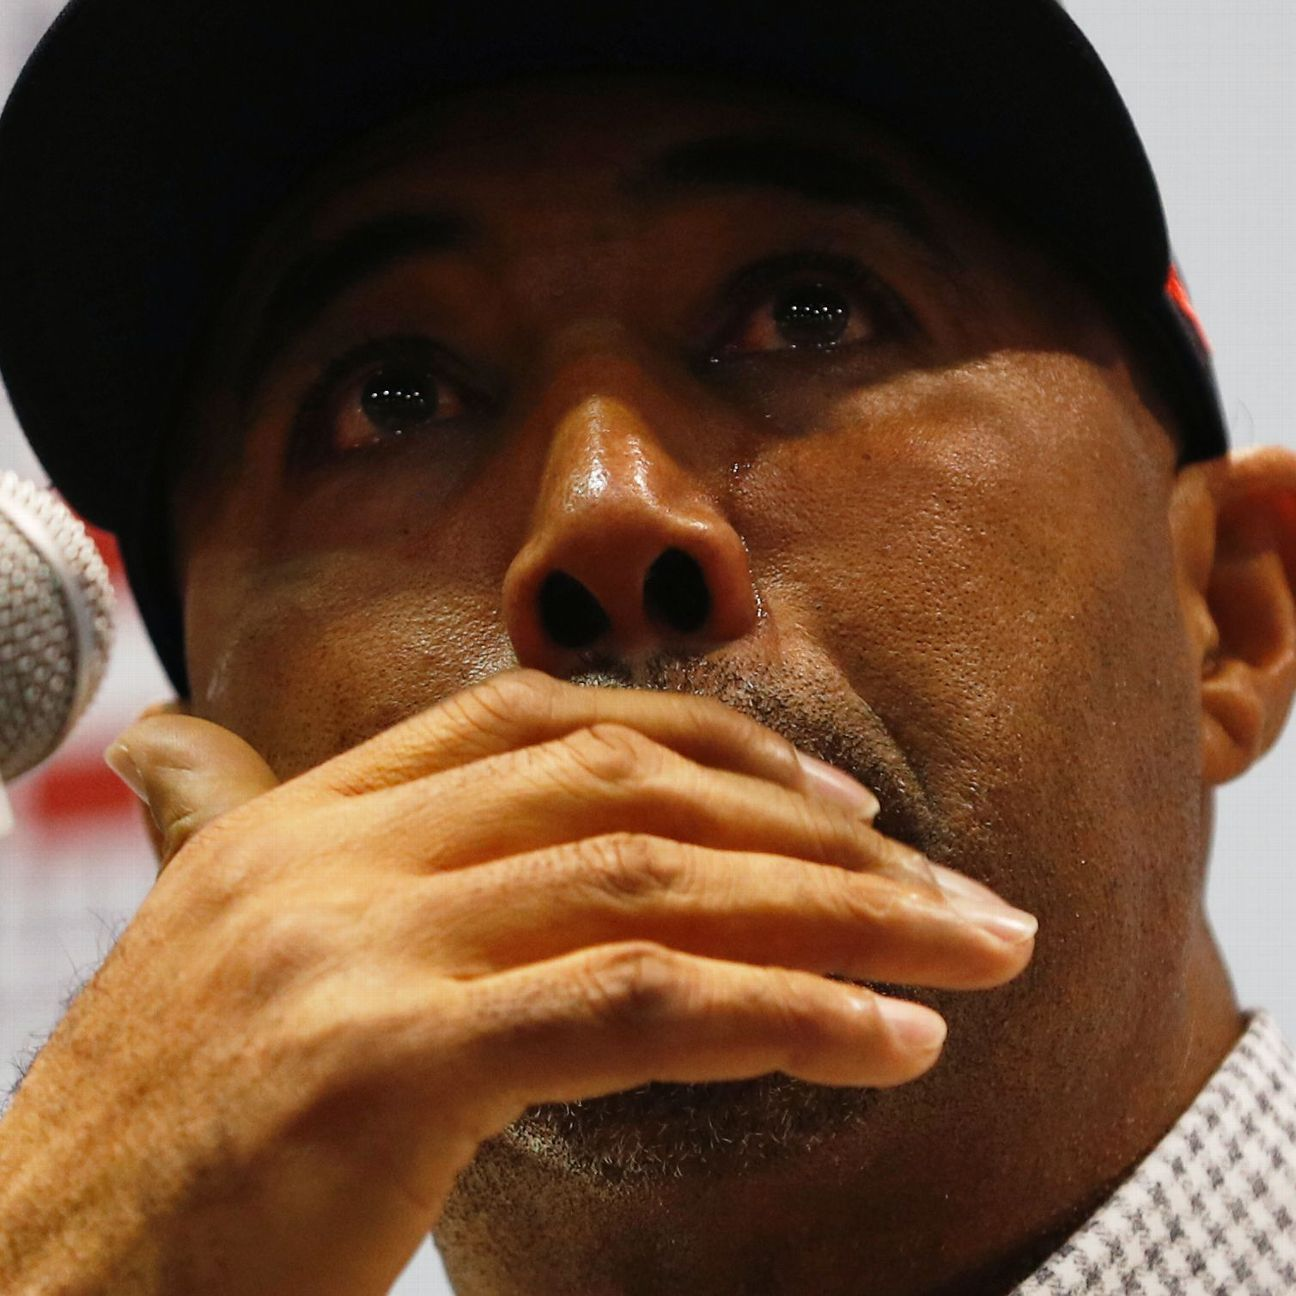 Harold Baines' selection to the Baseball Hall of Fame on Sunday surprised many, and Baines said Monday that he played to try to win a championship, so he never gave a lot of thought to making the Hall.